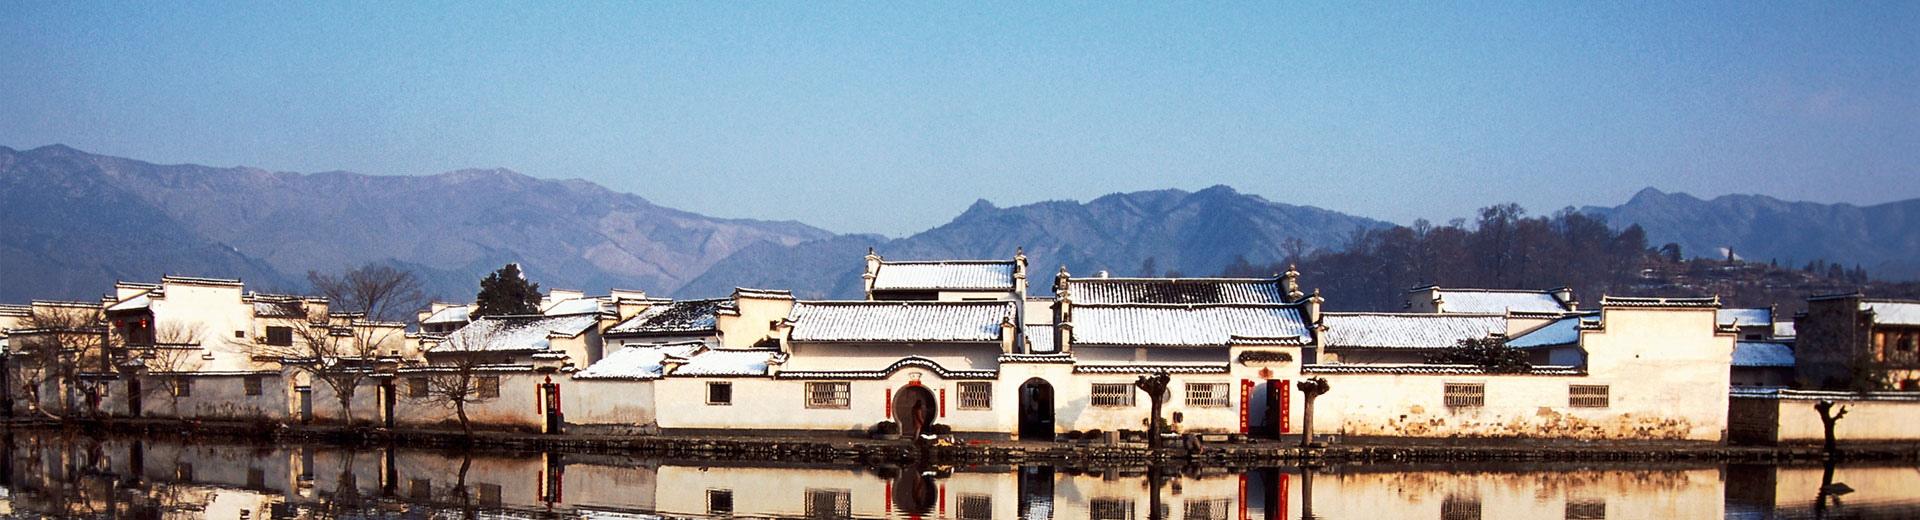 Admire the Beautiful Pristine Scenery of Hongcun Village